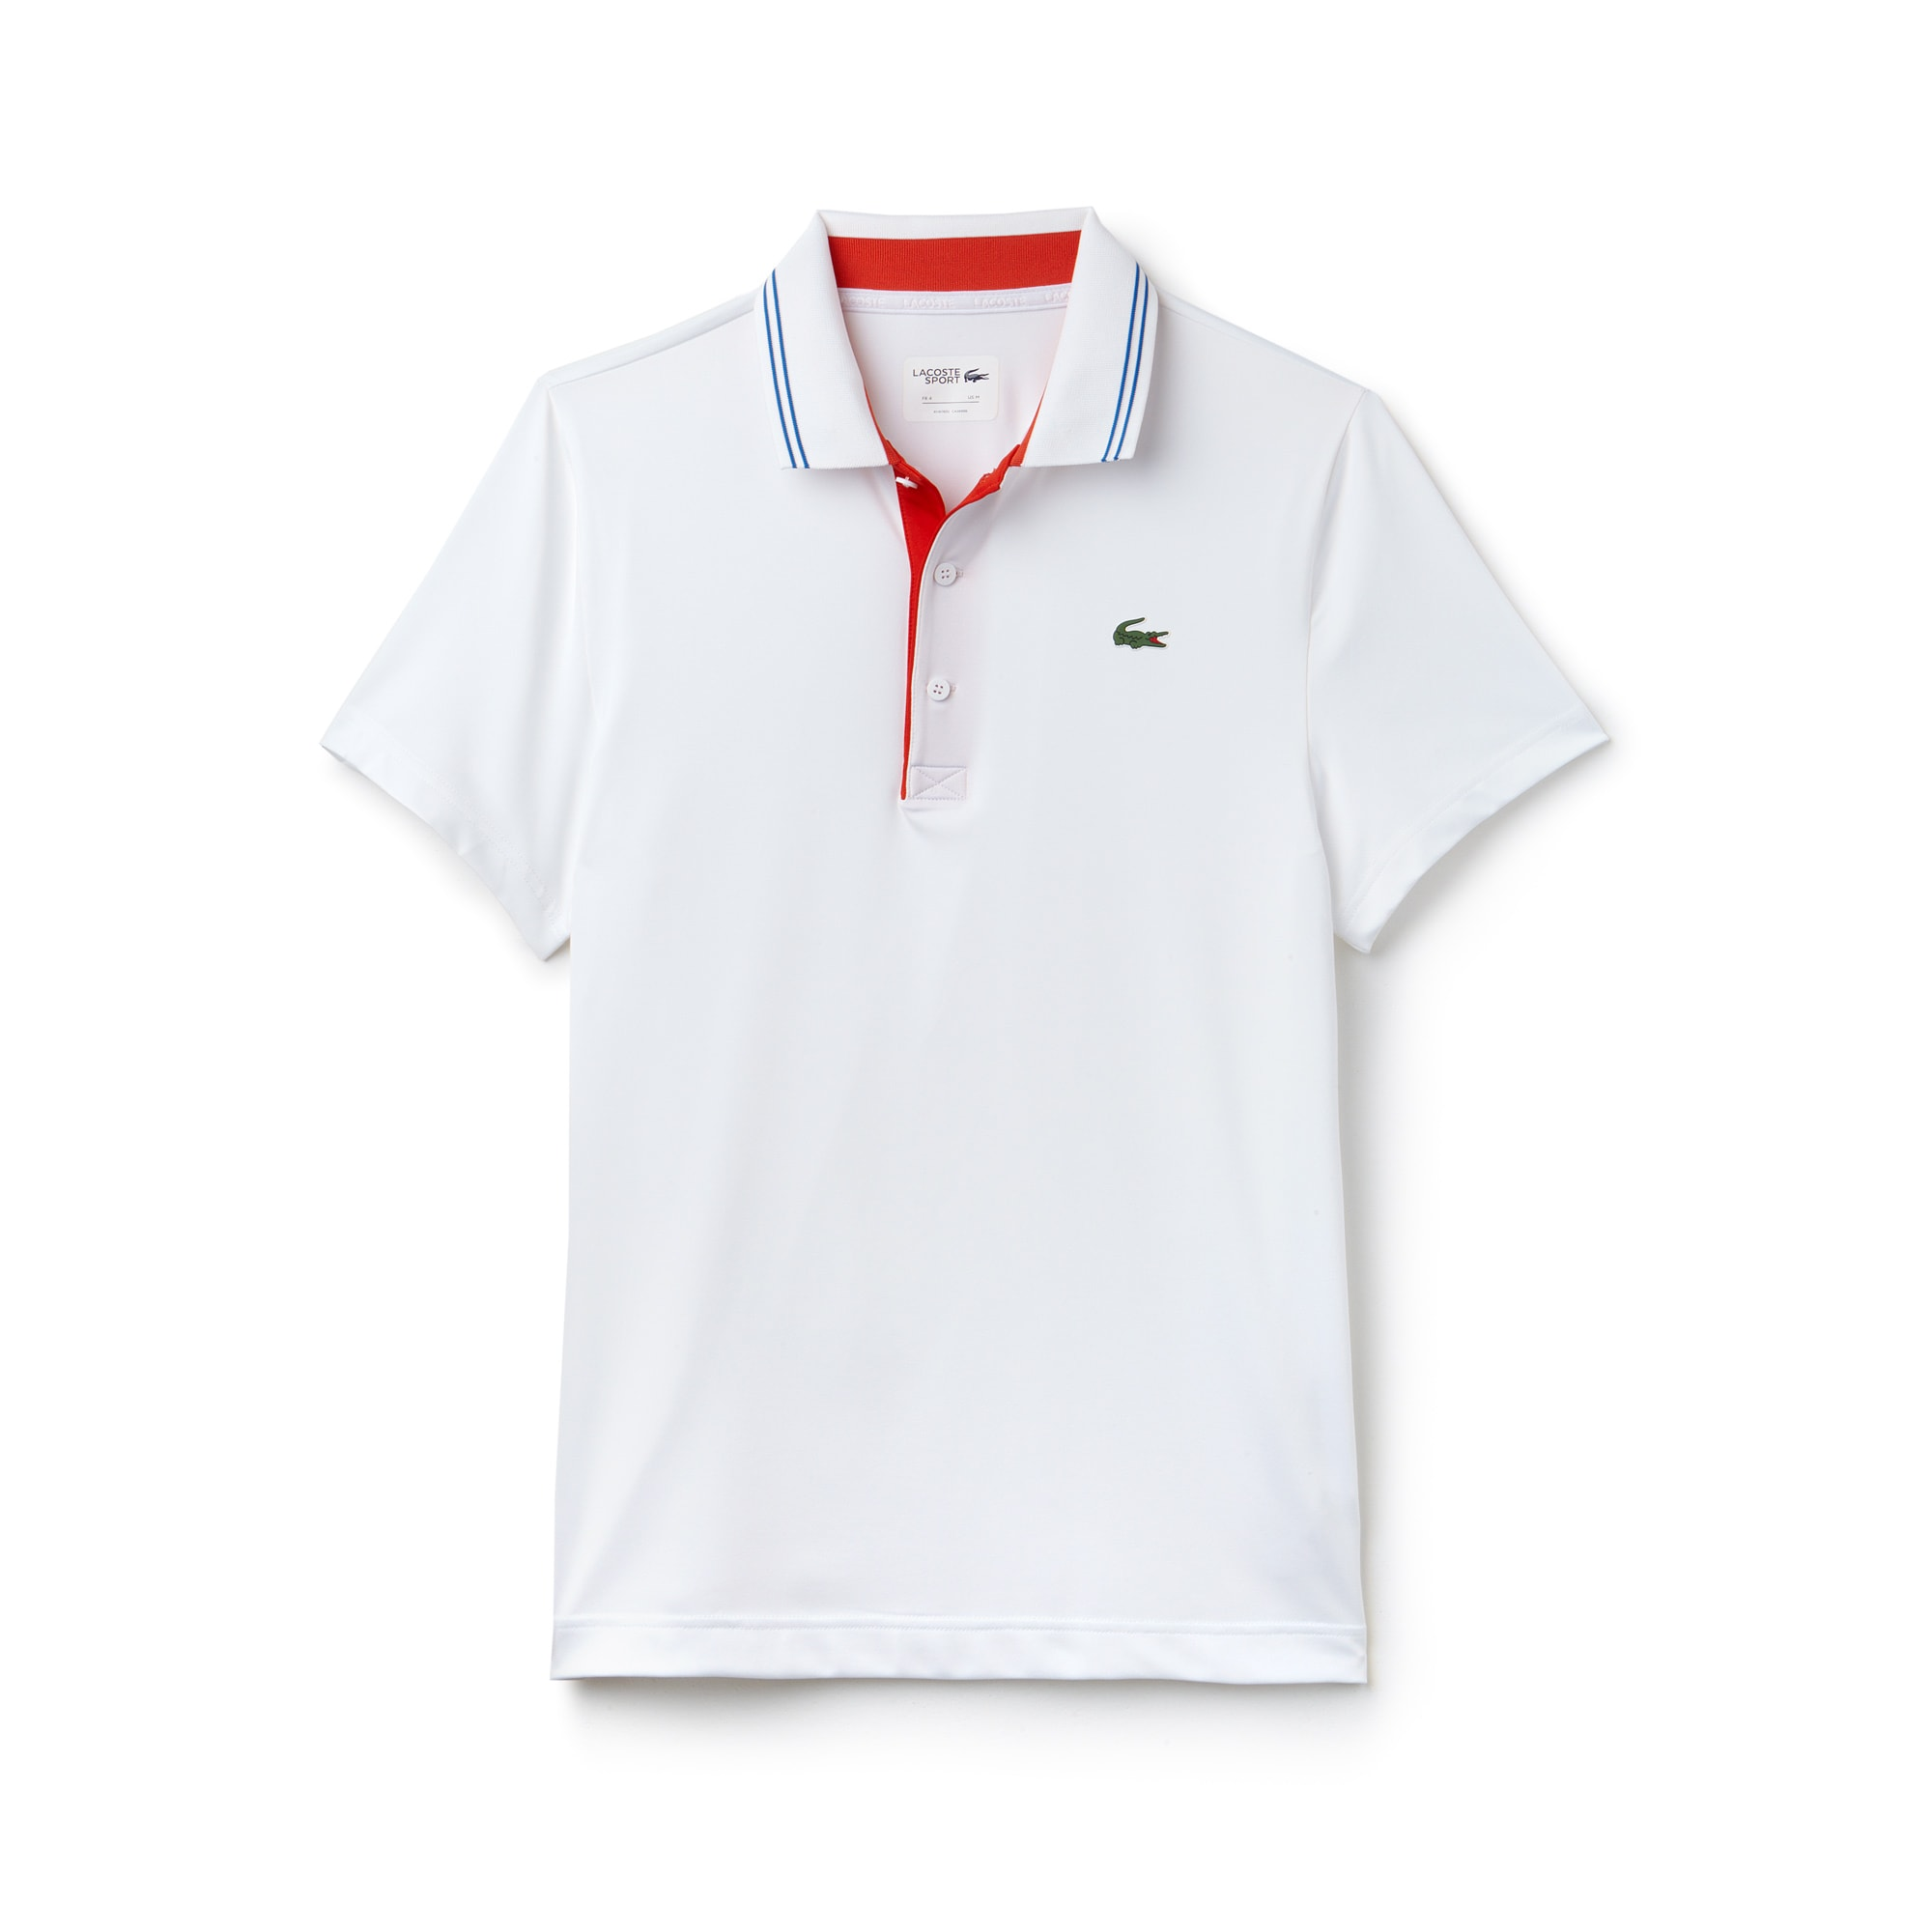 라코스테 스포츠 반팔 카라티 Lacoste Mens SPORT Lettering Stretch Technical Jersey Golf Polo Shirt,white/pomegrenate-blue ro